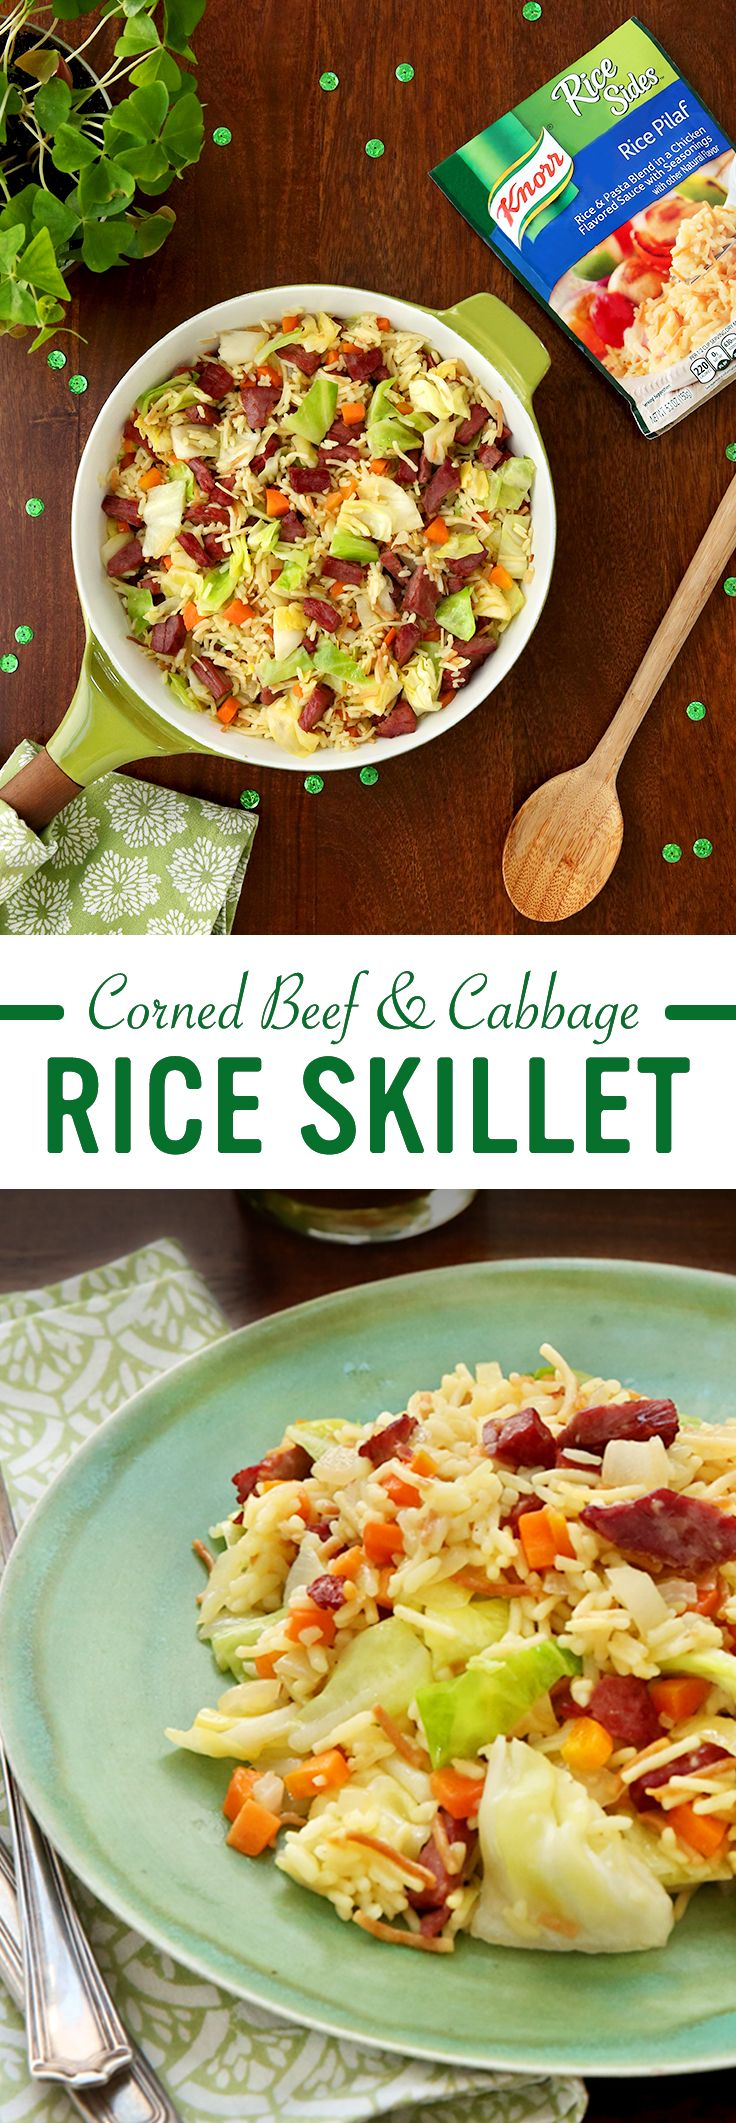 Why wait for St. Patrick's Day to find your pot (or skillet!) of gold? Knorr's take on Corned Beef & Cabbage Rice Skillet sets the standard for Irish inspired flavor. Follow these easy steps for family dinner tonight:  1. Cook onion, carrot, & cabbage 2. Add Knorr® Rice Sides™ - Rice Pilaf 3. Stir in corned beef & mustard. Serve & enjoy!